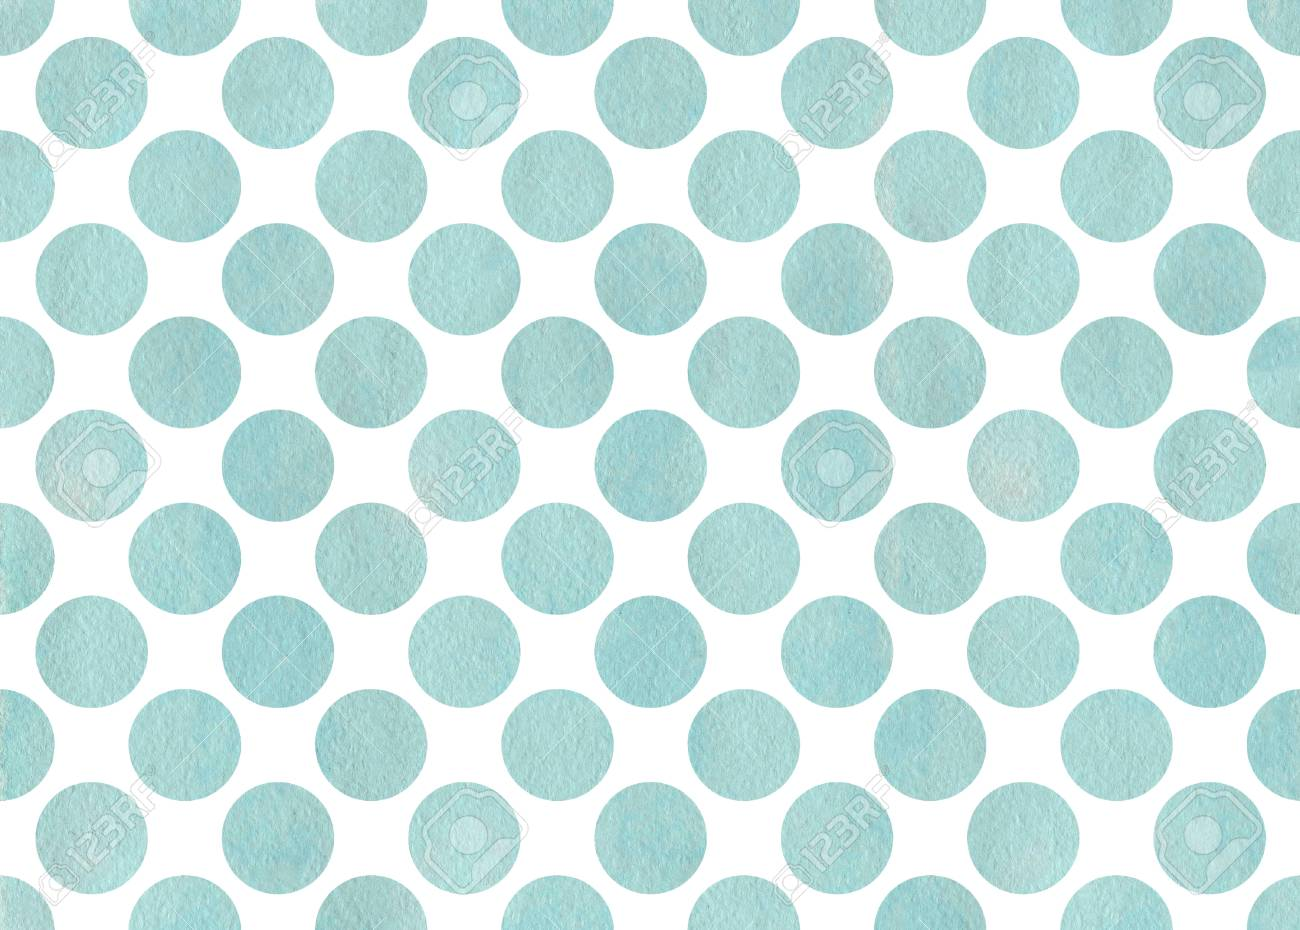 Watercolor Blue Polka Dot Background Pattern With Dots For